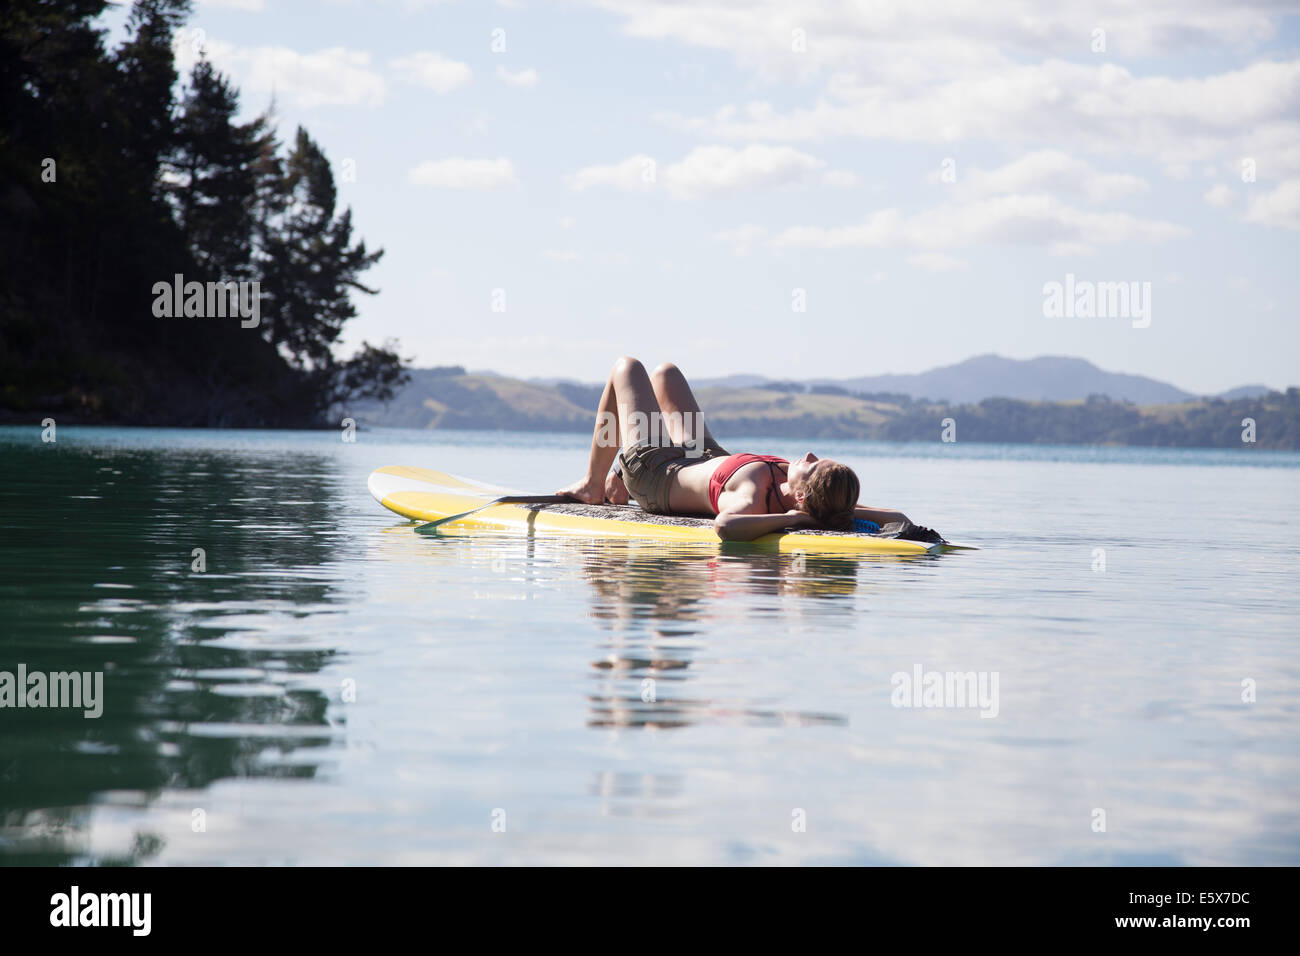 Mid adult woman sunbathing on paddleboard en mer Photo Stock